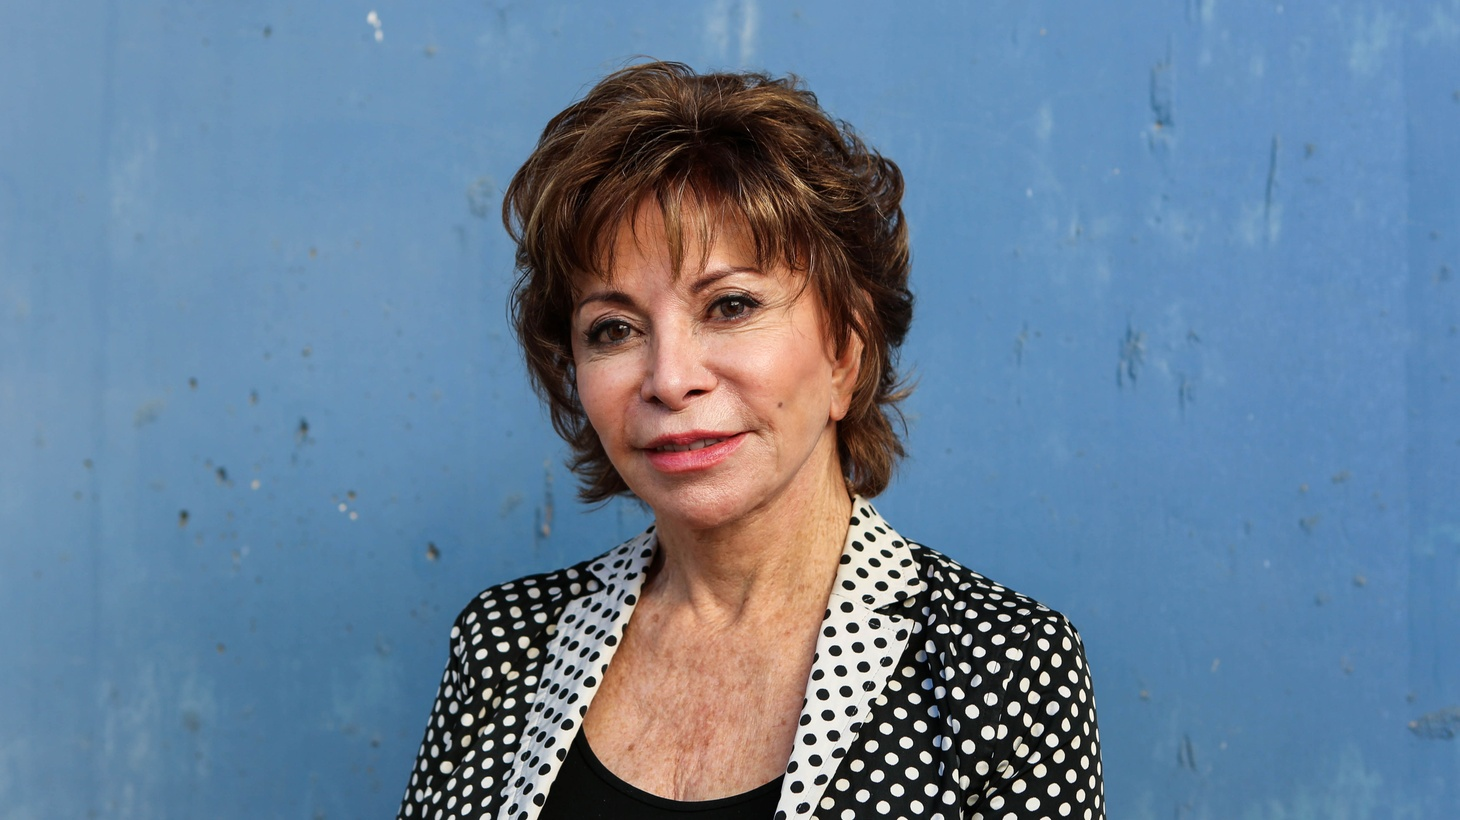 Storytelling queen Isabel Allende wrote a time-crossing, culture-hopping chamber piece that gives faces to immigration during these dark times for literature, In the Midst of Winter.